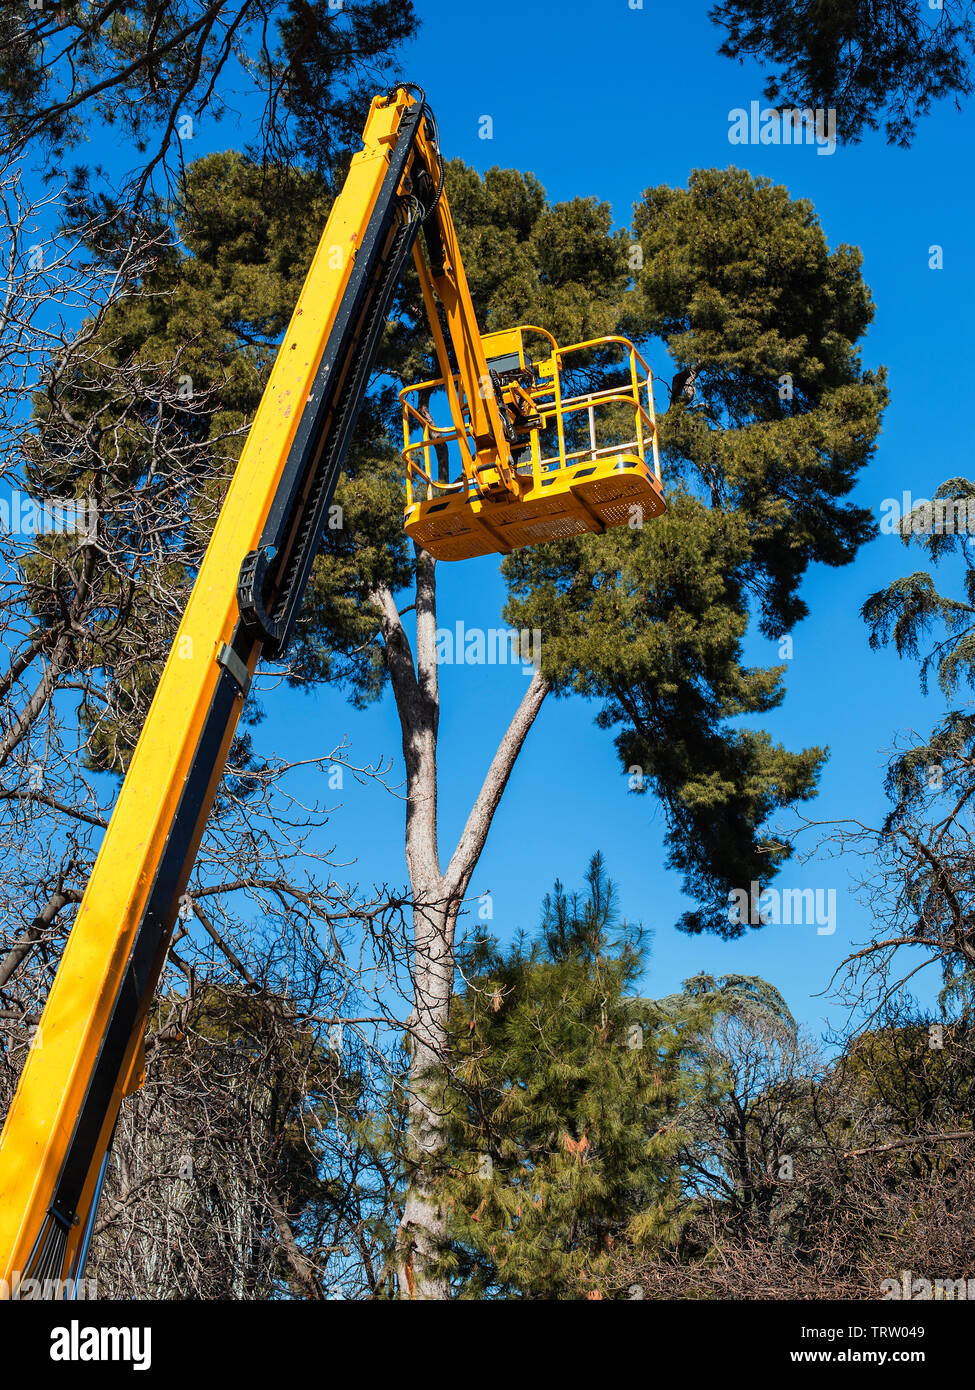 yellow  platform lift on top tress in the park to prune pine trees - Stock Image